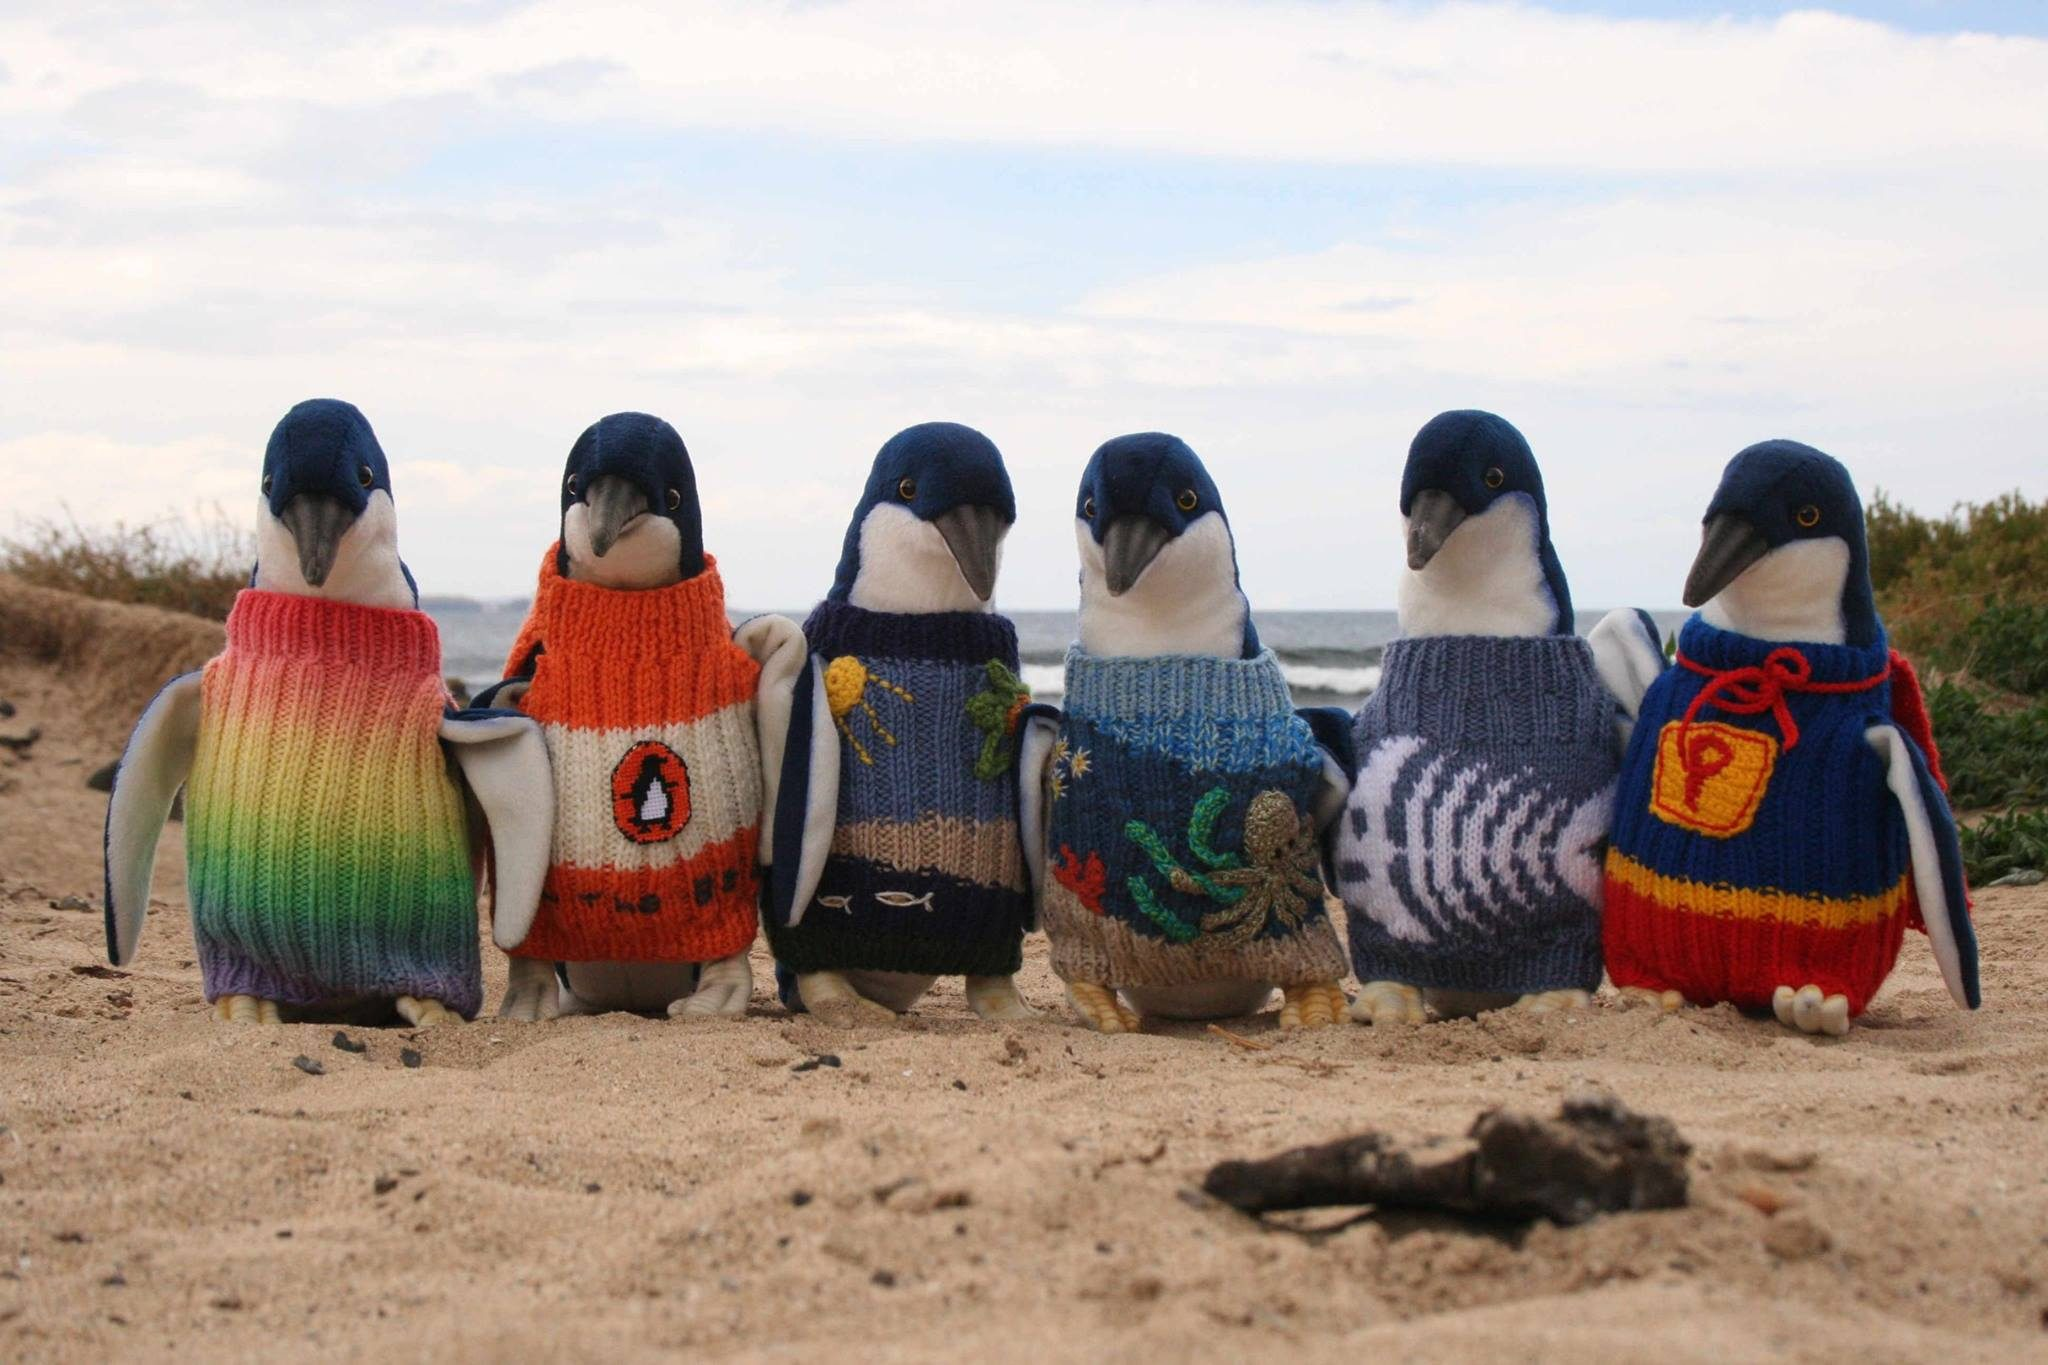 Does Australia's Oldest Man Knit Sweaters for Injured Penguins? - snopes